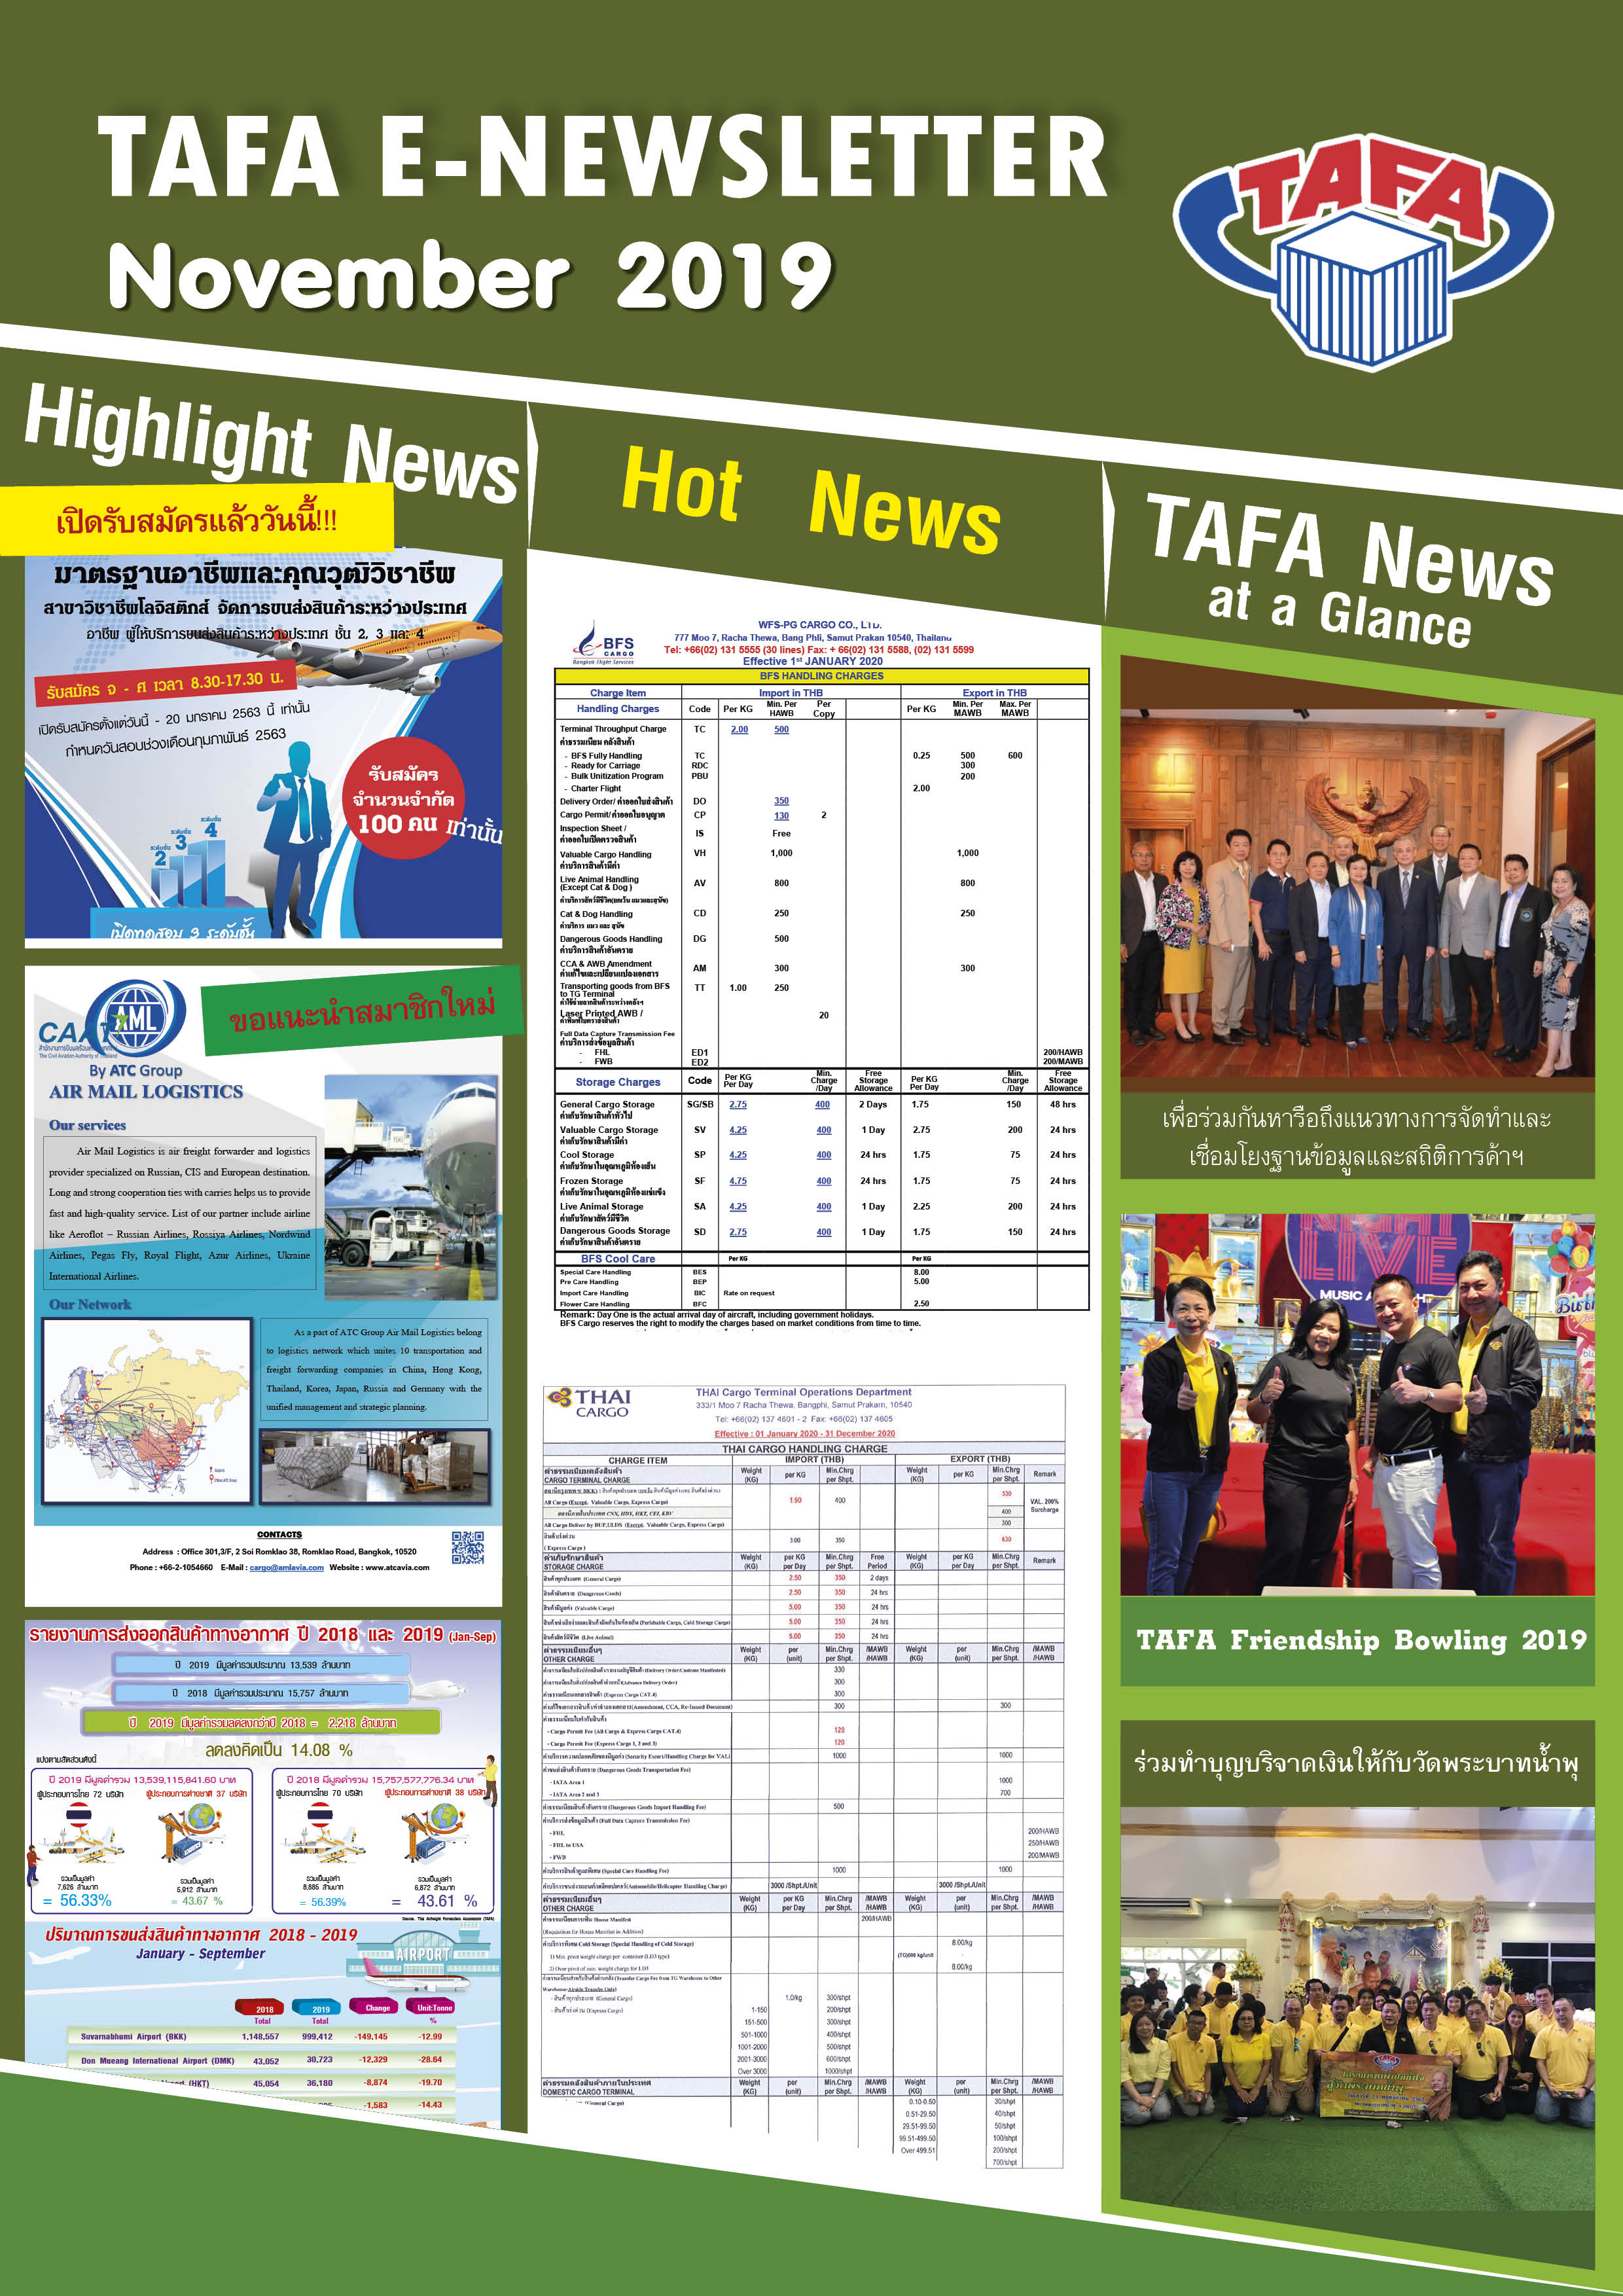 TAFA Newsletter, Issue 11 of November 2019